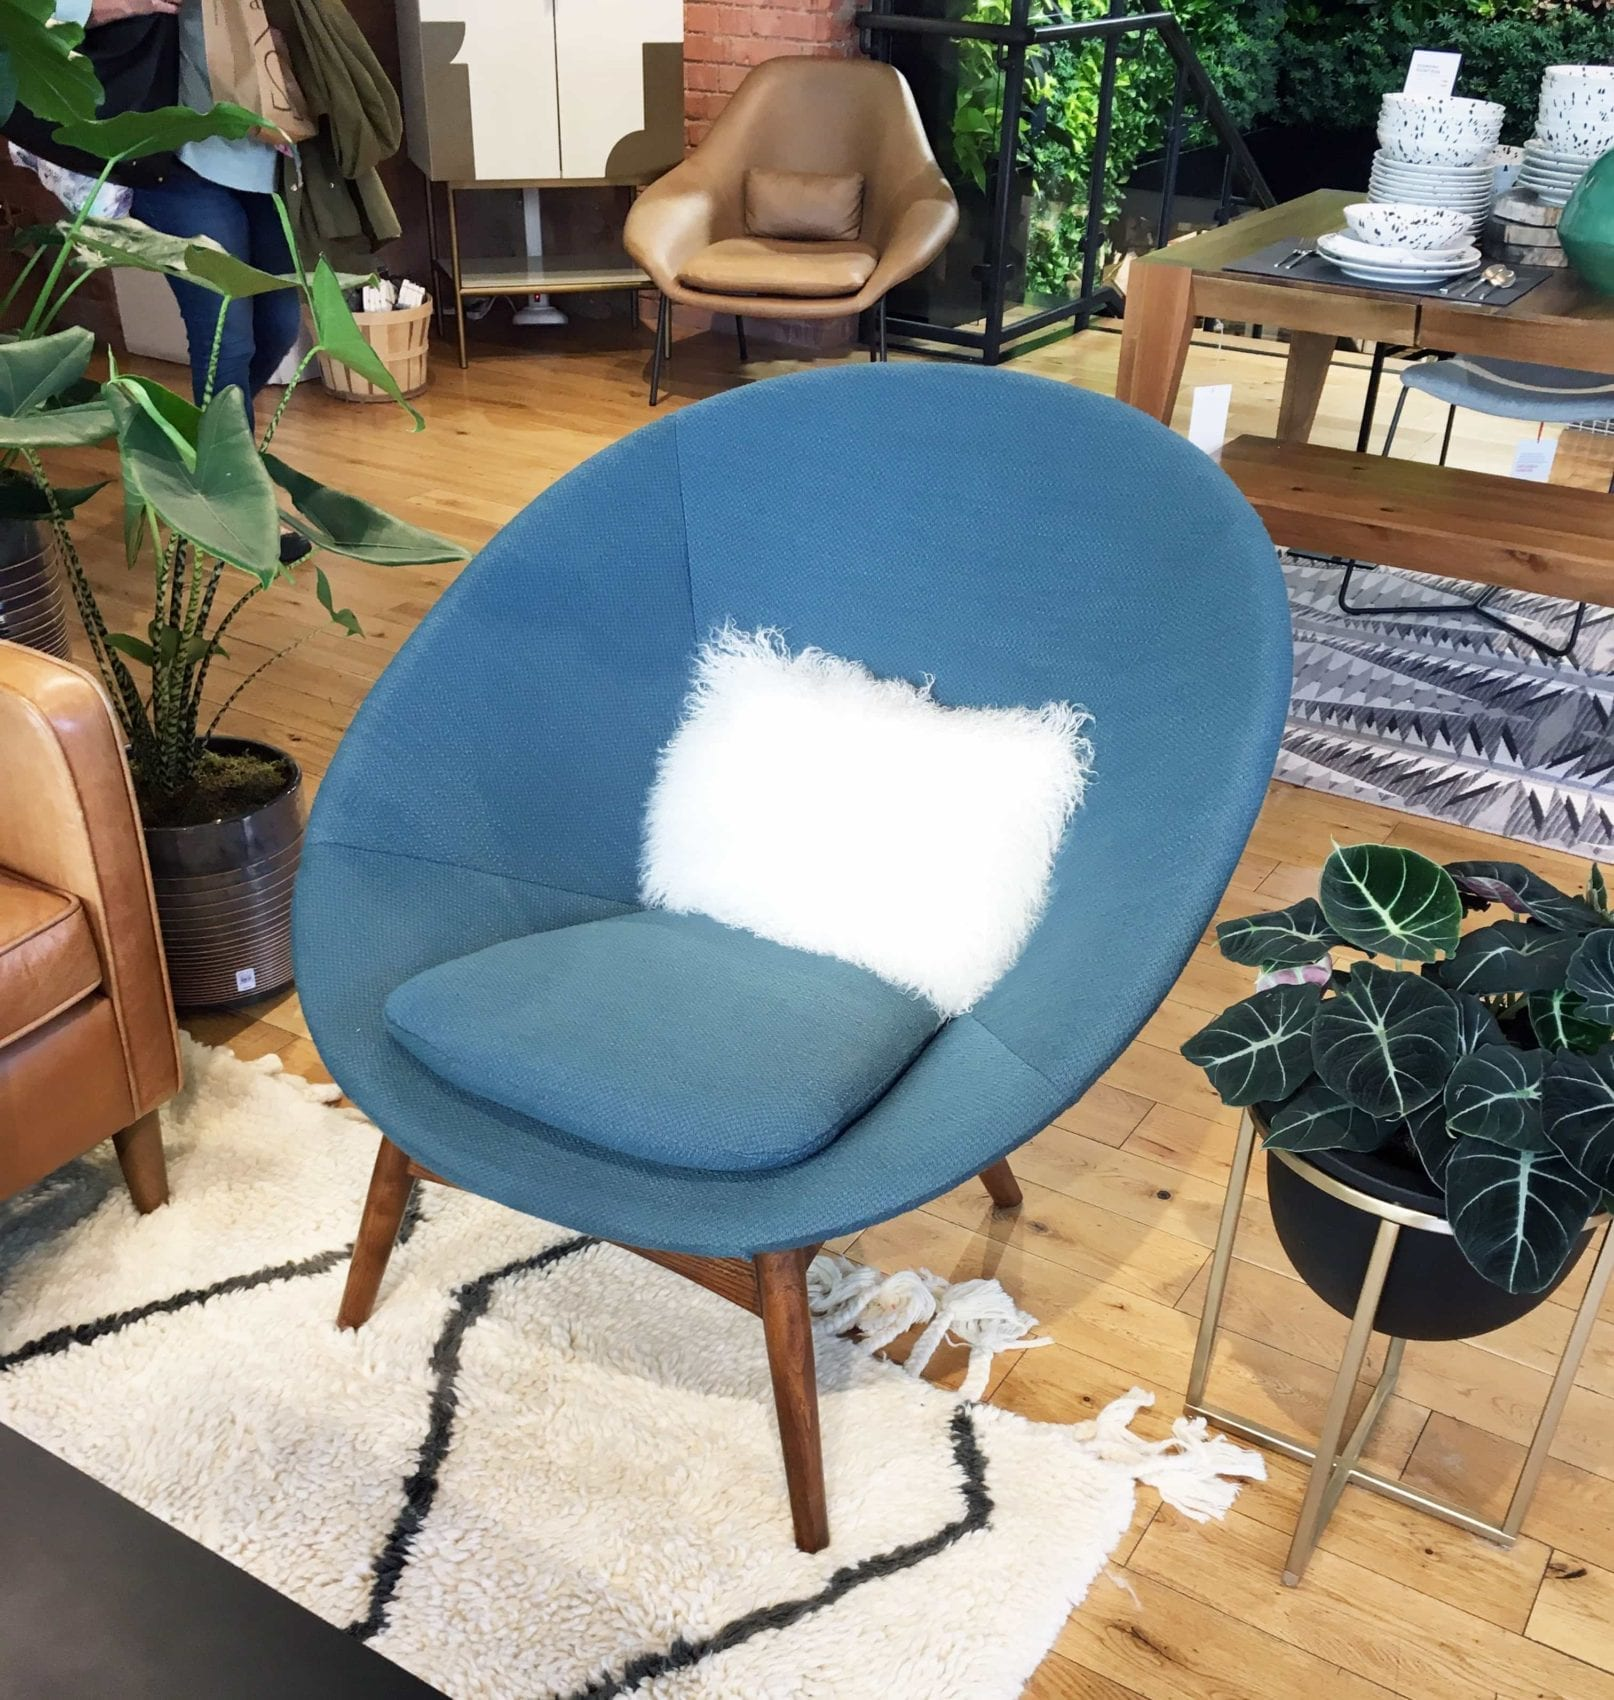 Speedy tour of west elm tottenham court road interior for West elm yellow chair